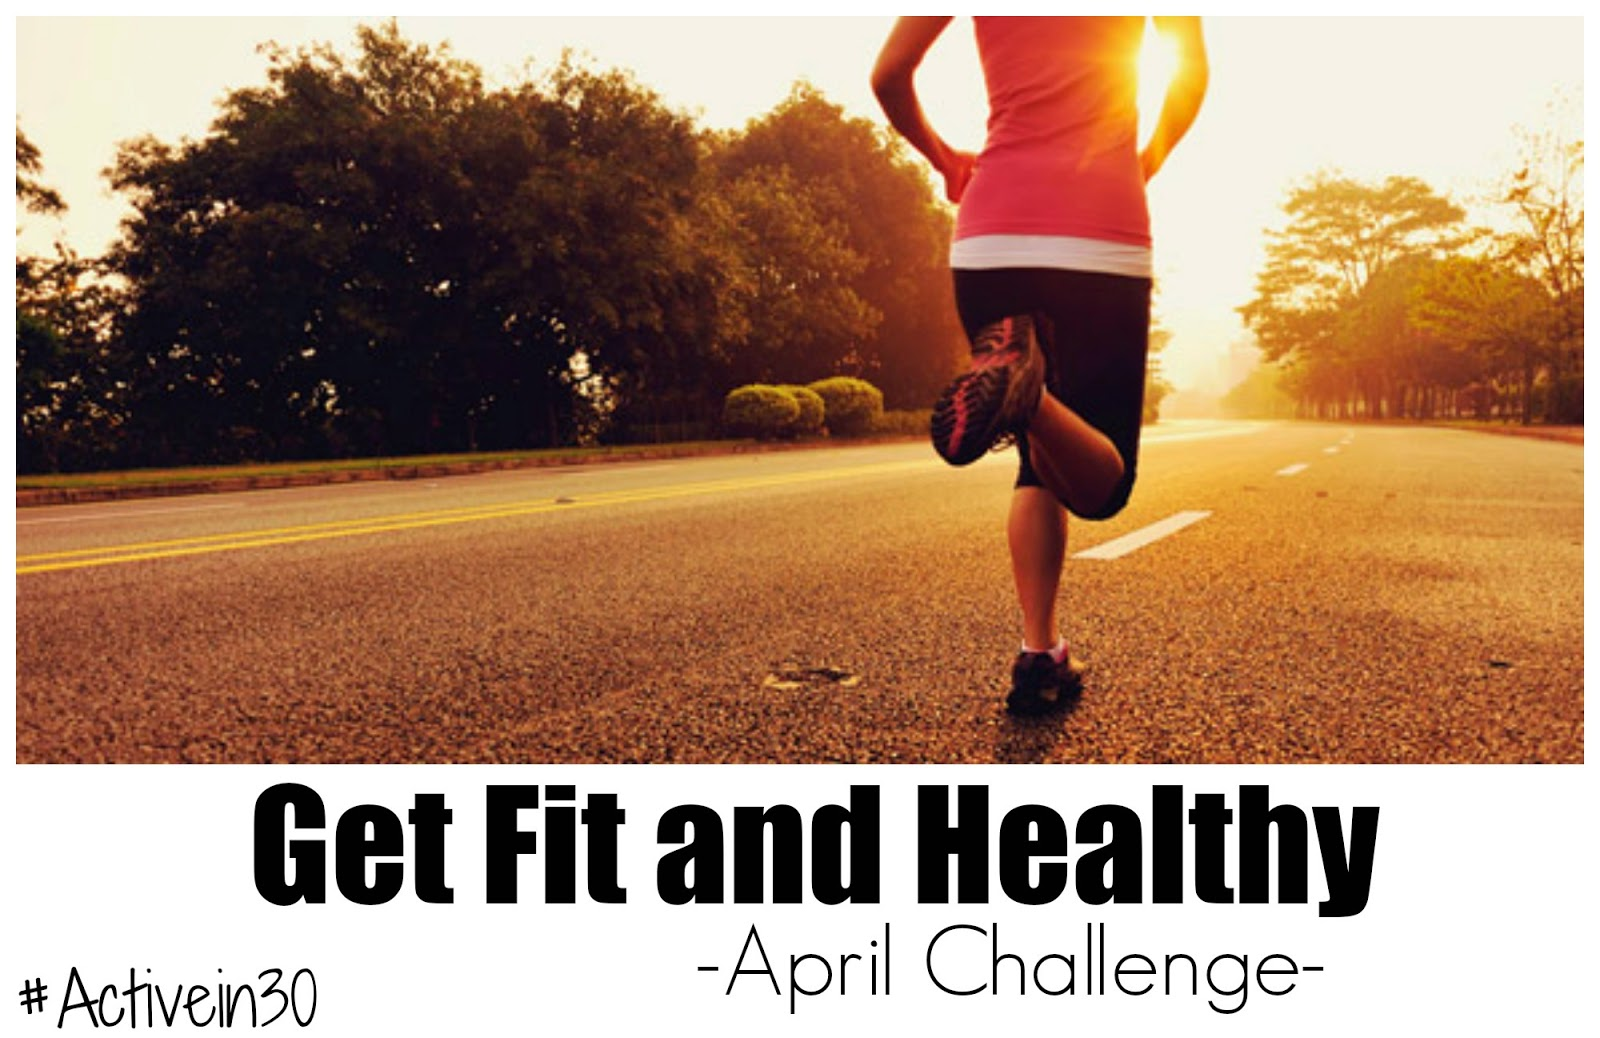 April's Challenge to Get Fit and Healthy #Activein30